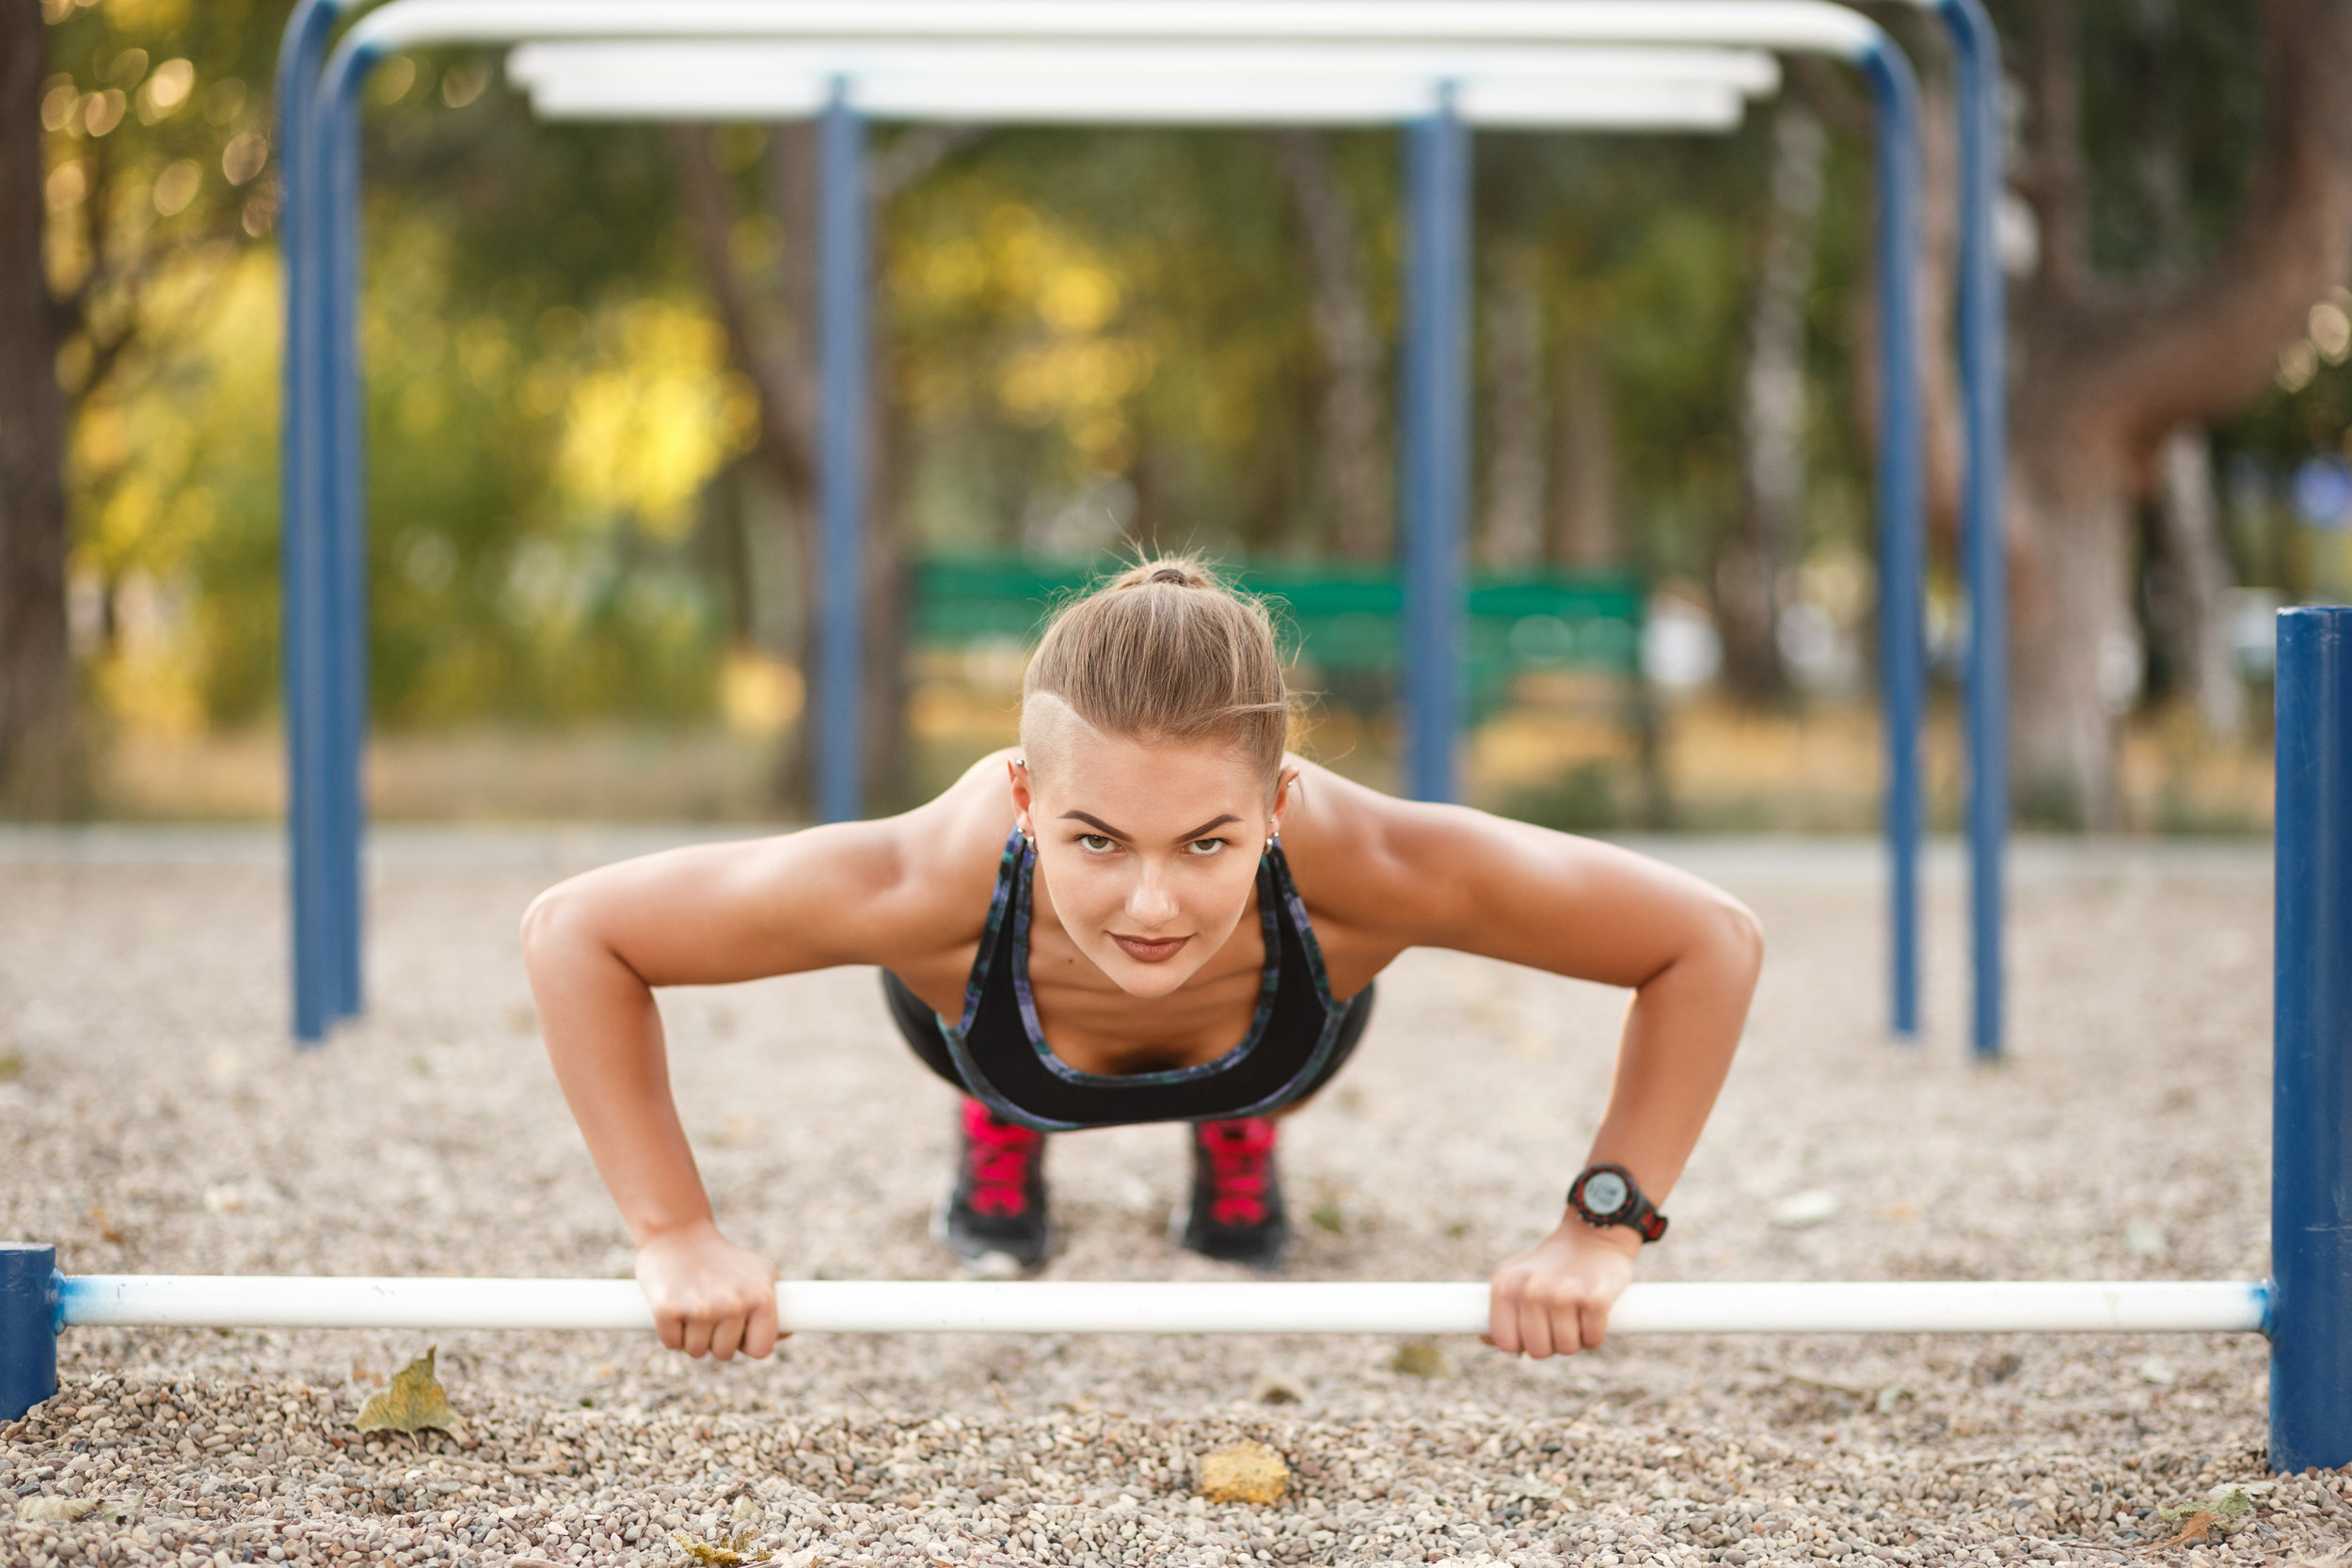 outdoor-workout-exercise-PJ7ZWNR.jpg